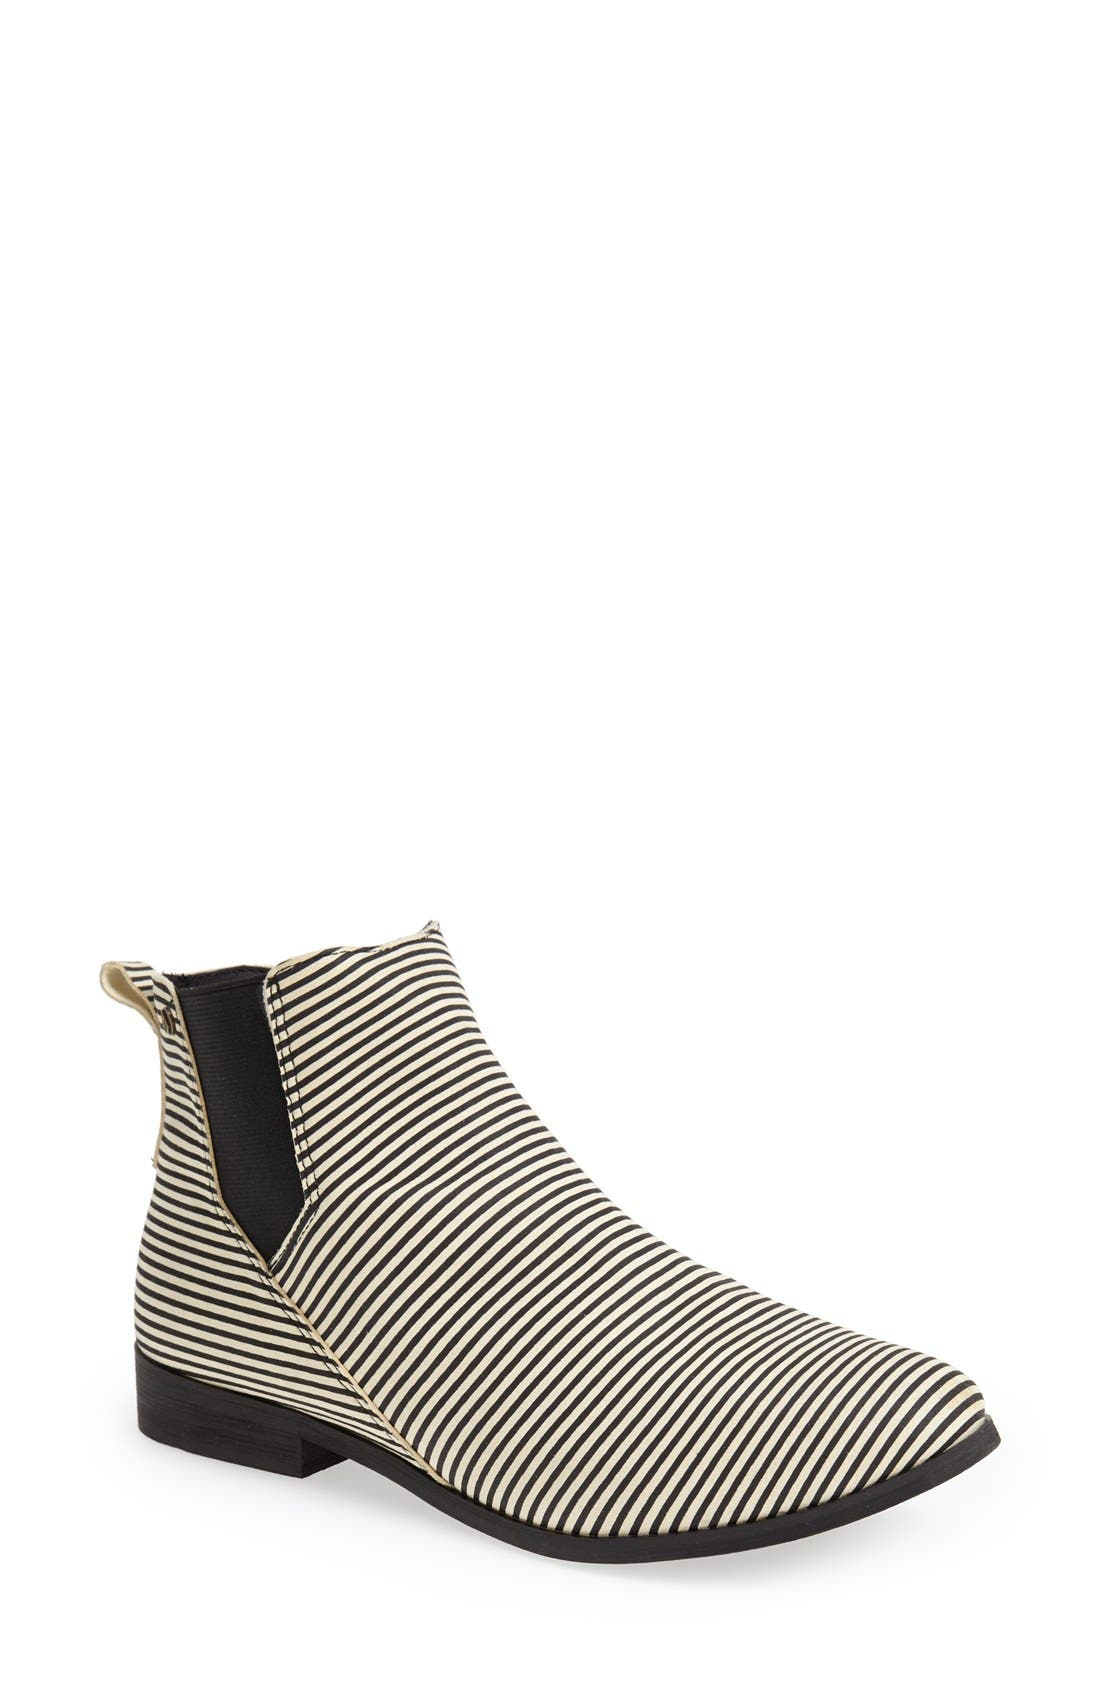 Main Image - Volcom 'Killer' Bootie (Women)